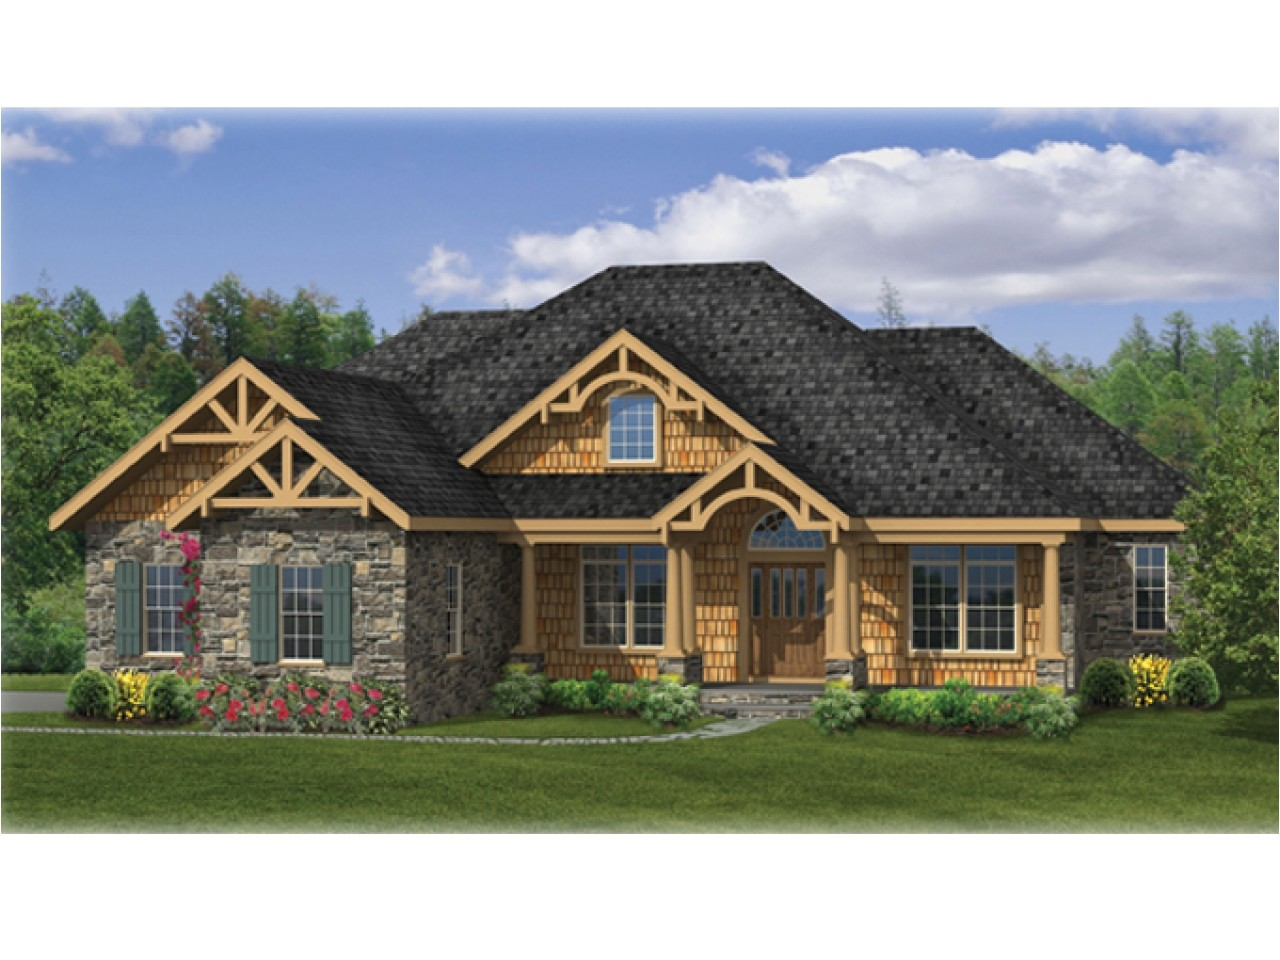 9620caff91f0ddec craftsman ranch house plans craftsman house plans ranch style